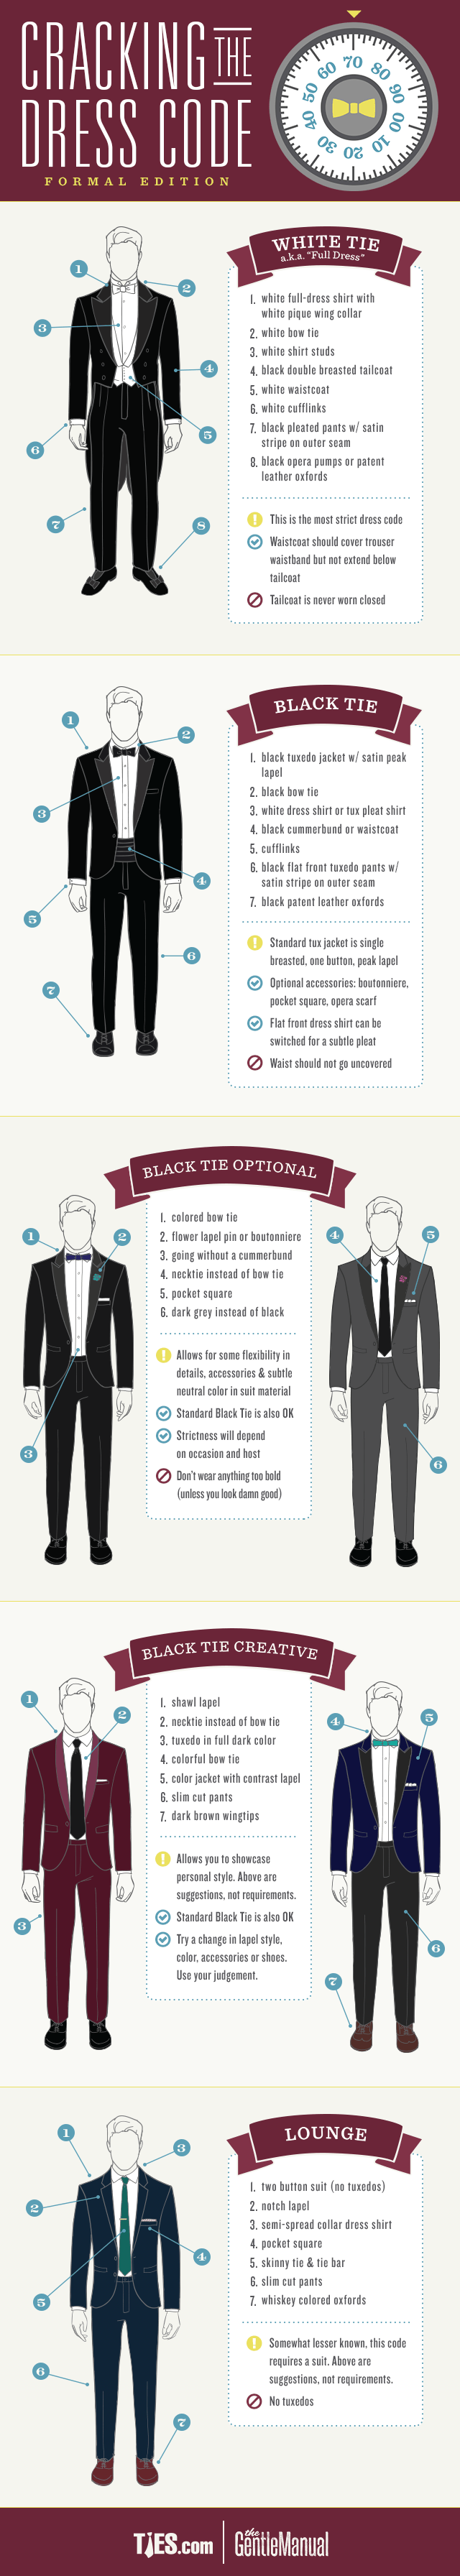 Cracking the dress code formal edition an infographic raddest